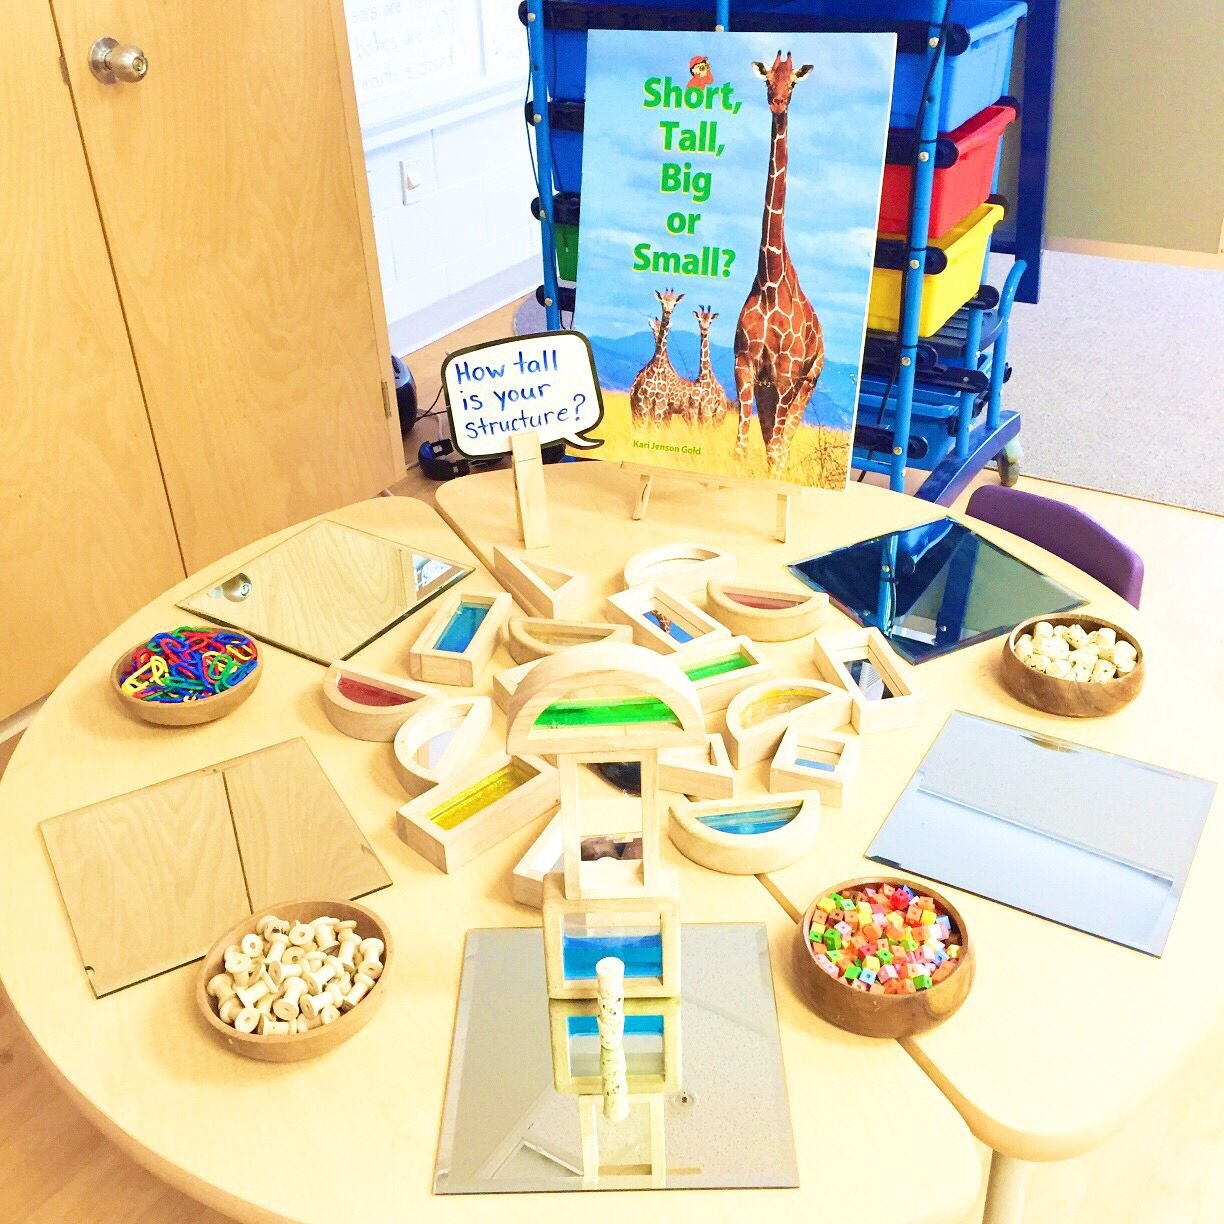 How Tall Is Your Structure Measurement Provocation Using